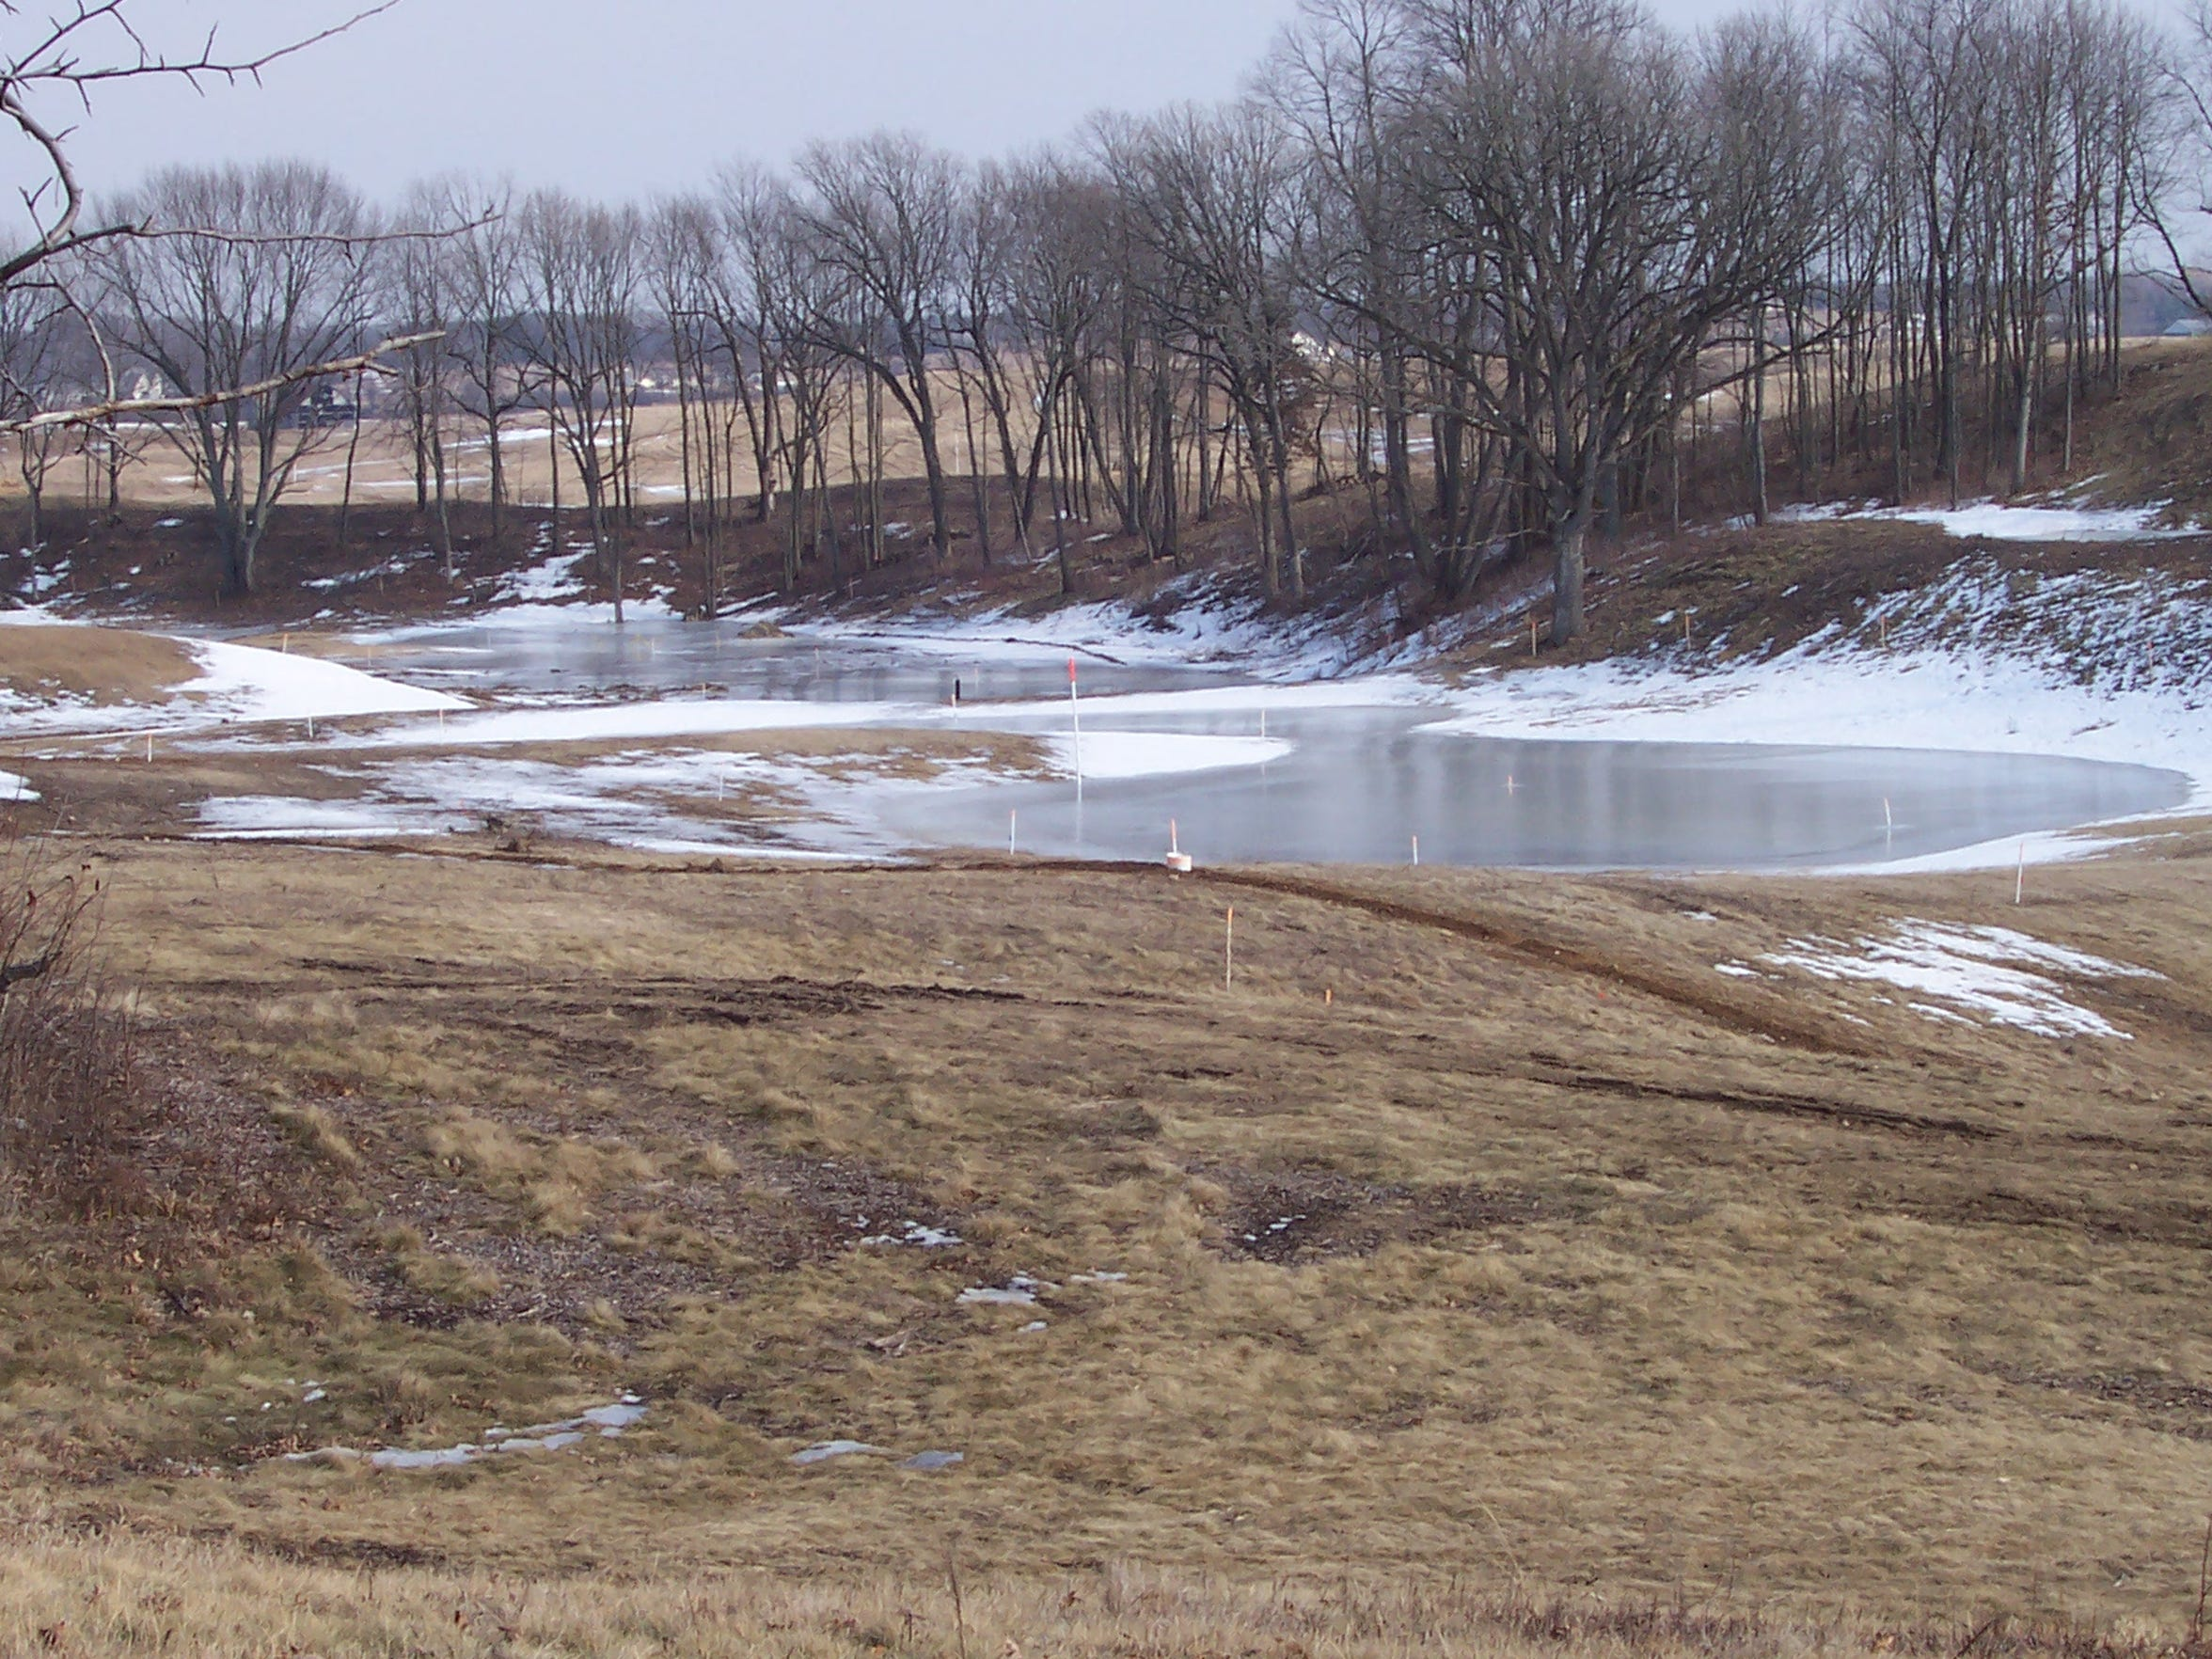 As he surveyed the land with Bob Lang, golf course architect Michael Hurdzan explained that the glacial features – the kettles, mounds and eskers – were perfectly spaced for golf.